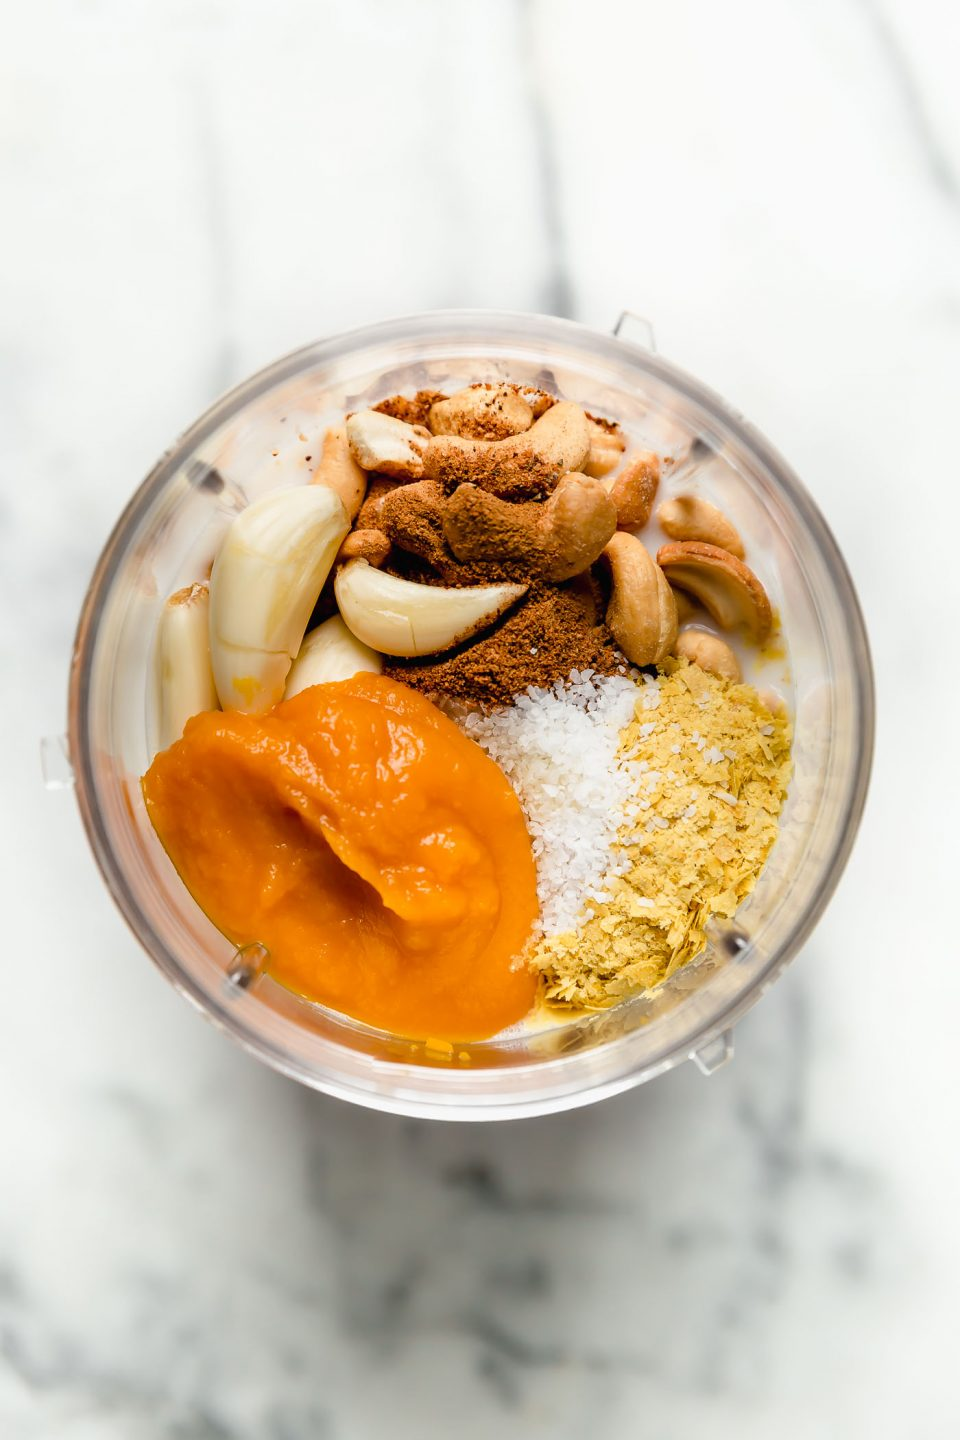 Vegan pumpkin cream sauce ingredients shown in a blender before blending.